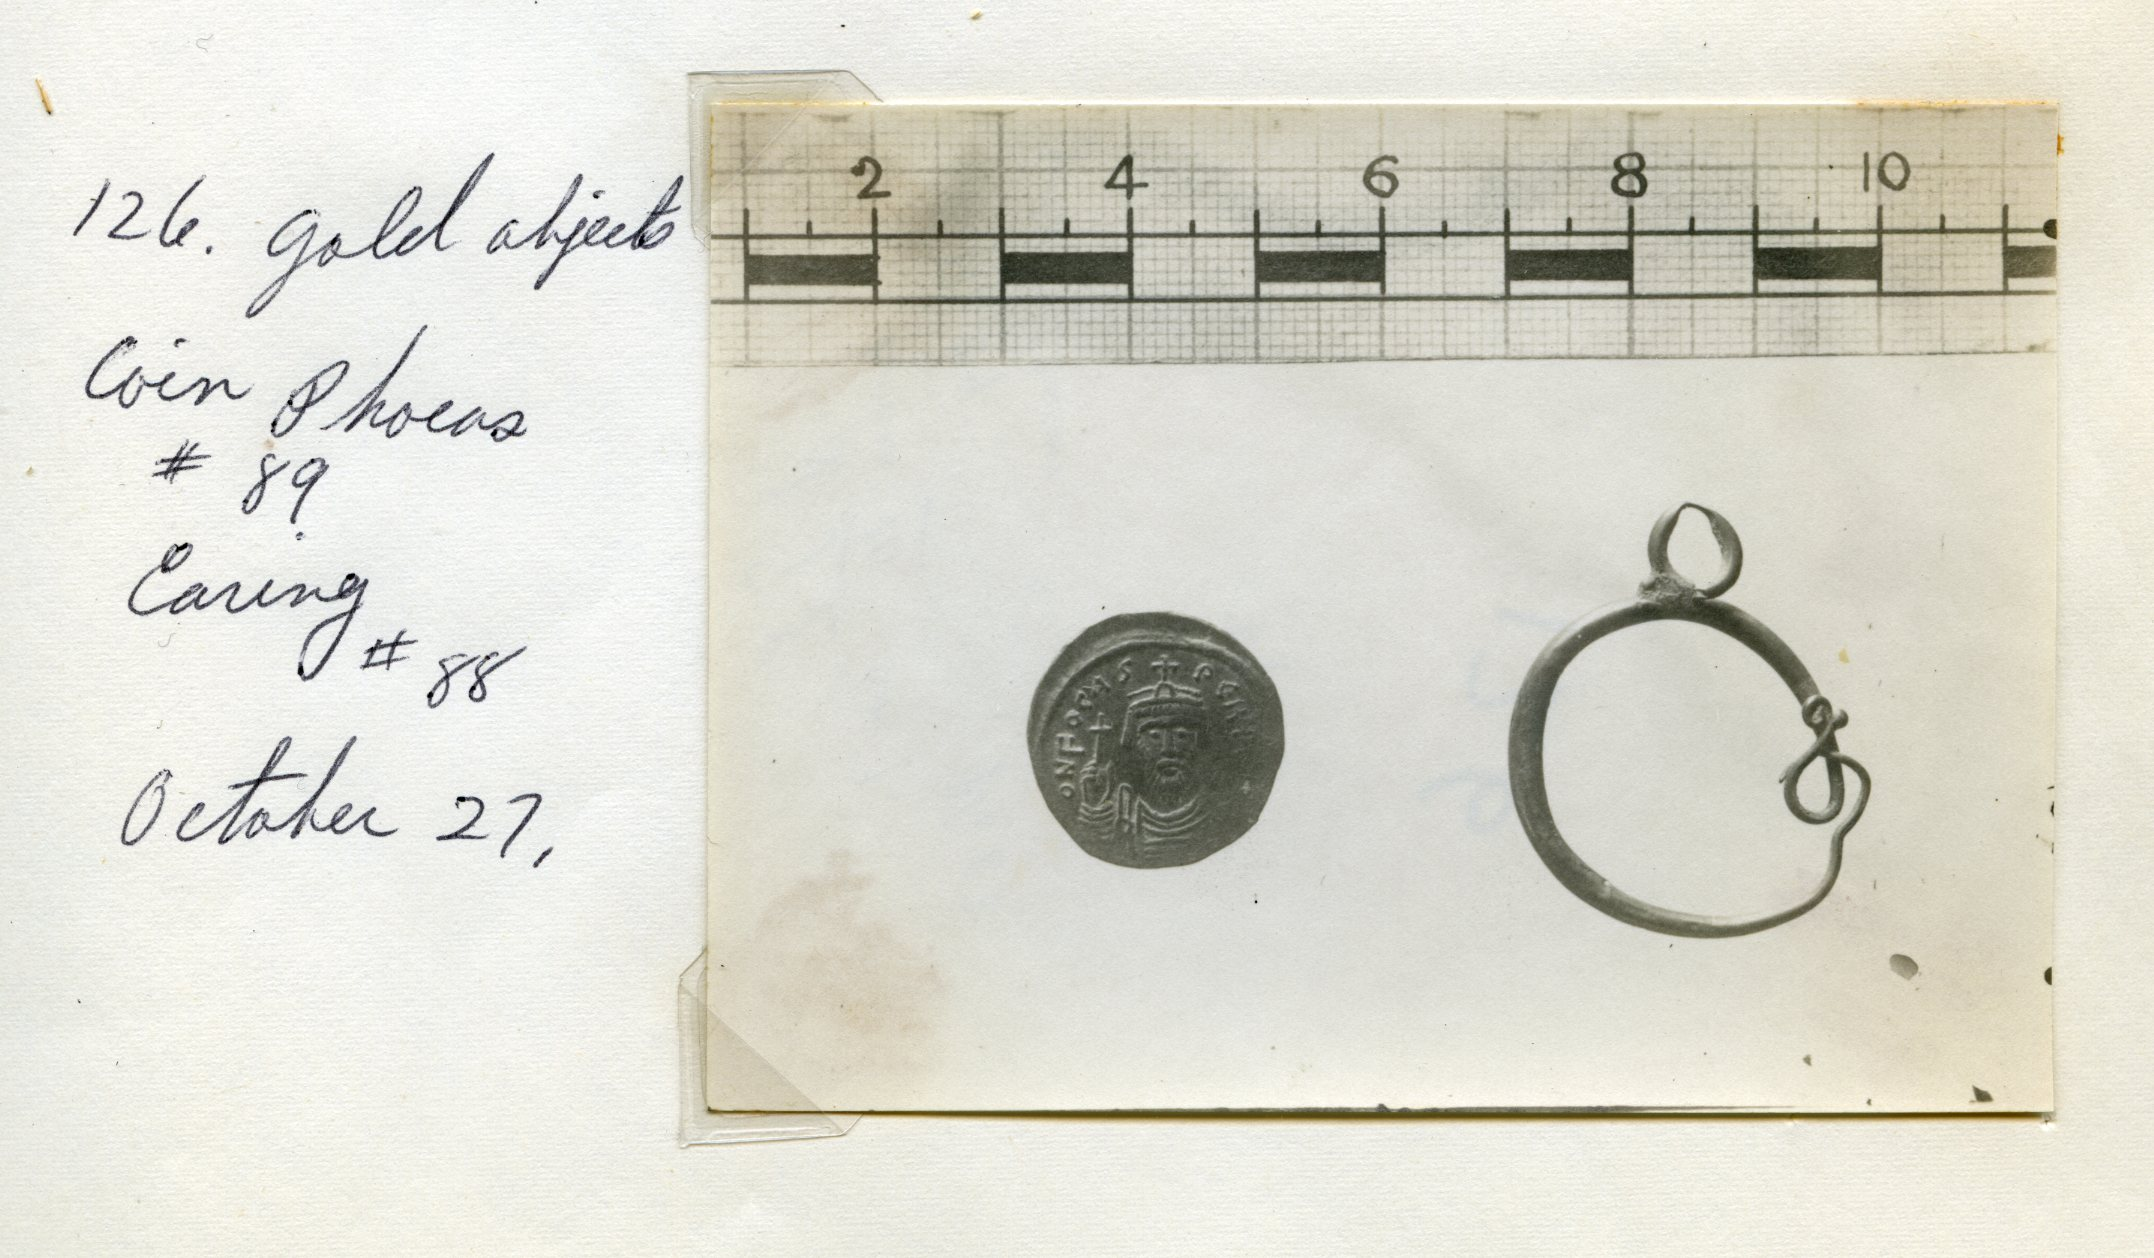 Coin of Emperor Phocas (602-610) found in House III on the tell. Photographed in 1921, alongside a gold earring now found in the University of Pennsylvania collection. The coin is kept at the Rockefeller Museum, Jerusalem.